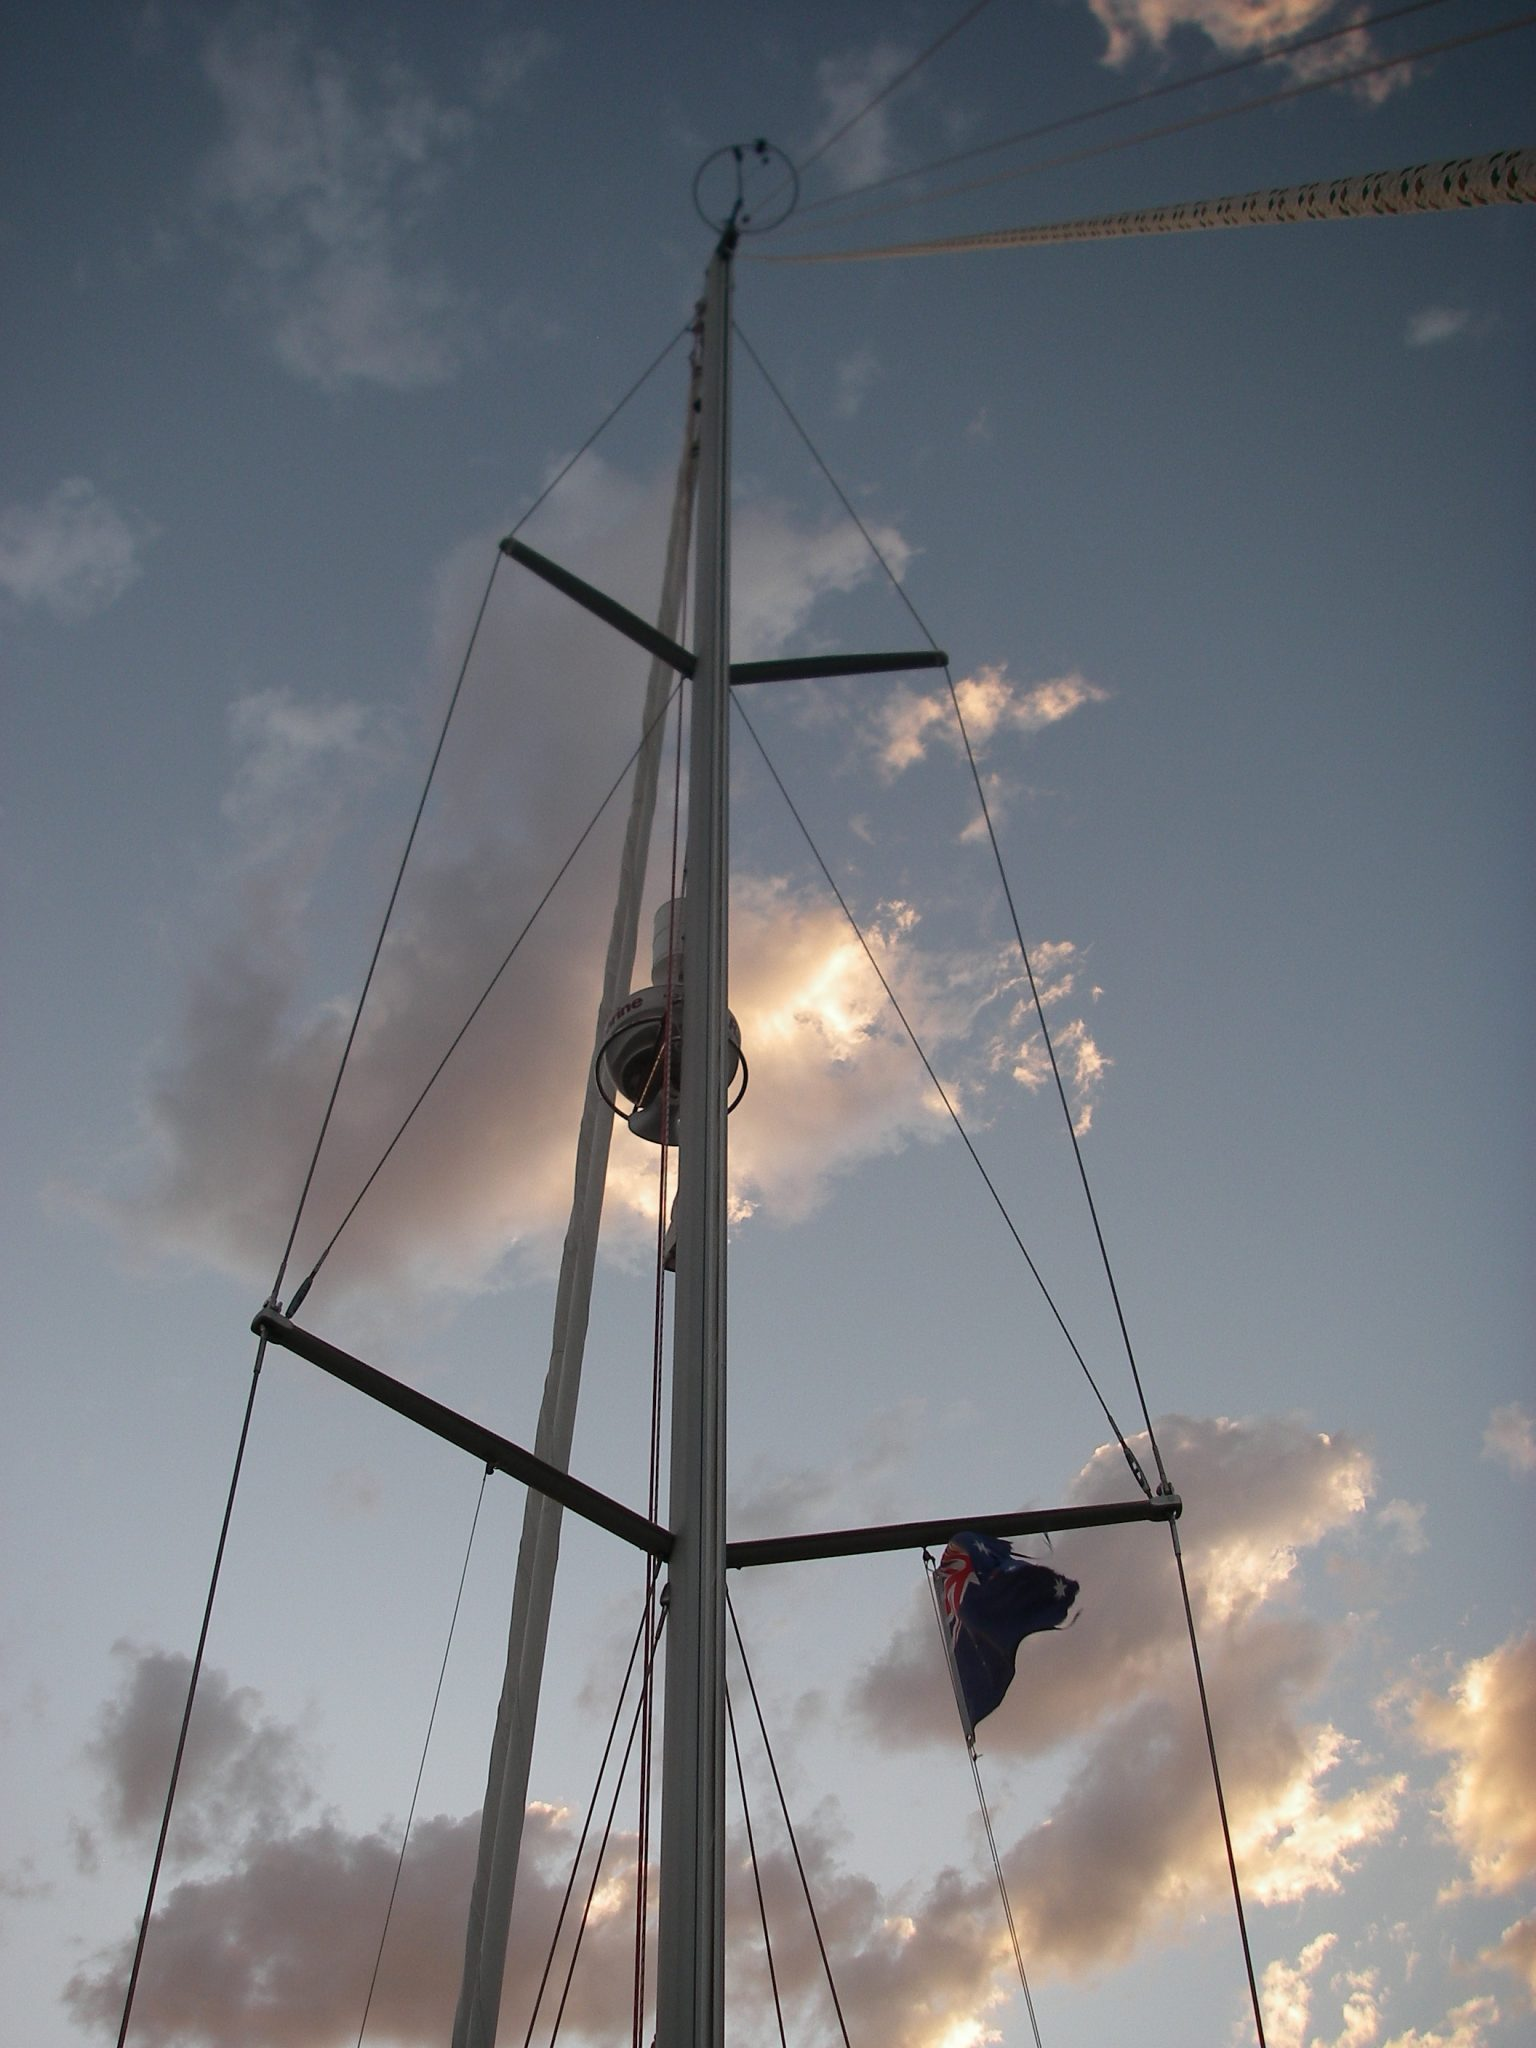 13. Pittwater sunset with Joyful's Australian courtesy flag flying from her starboard flag halyard